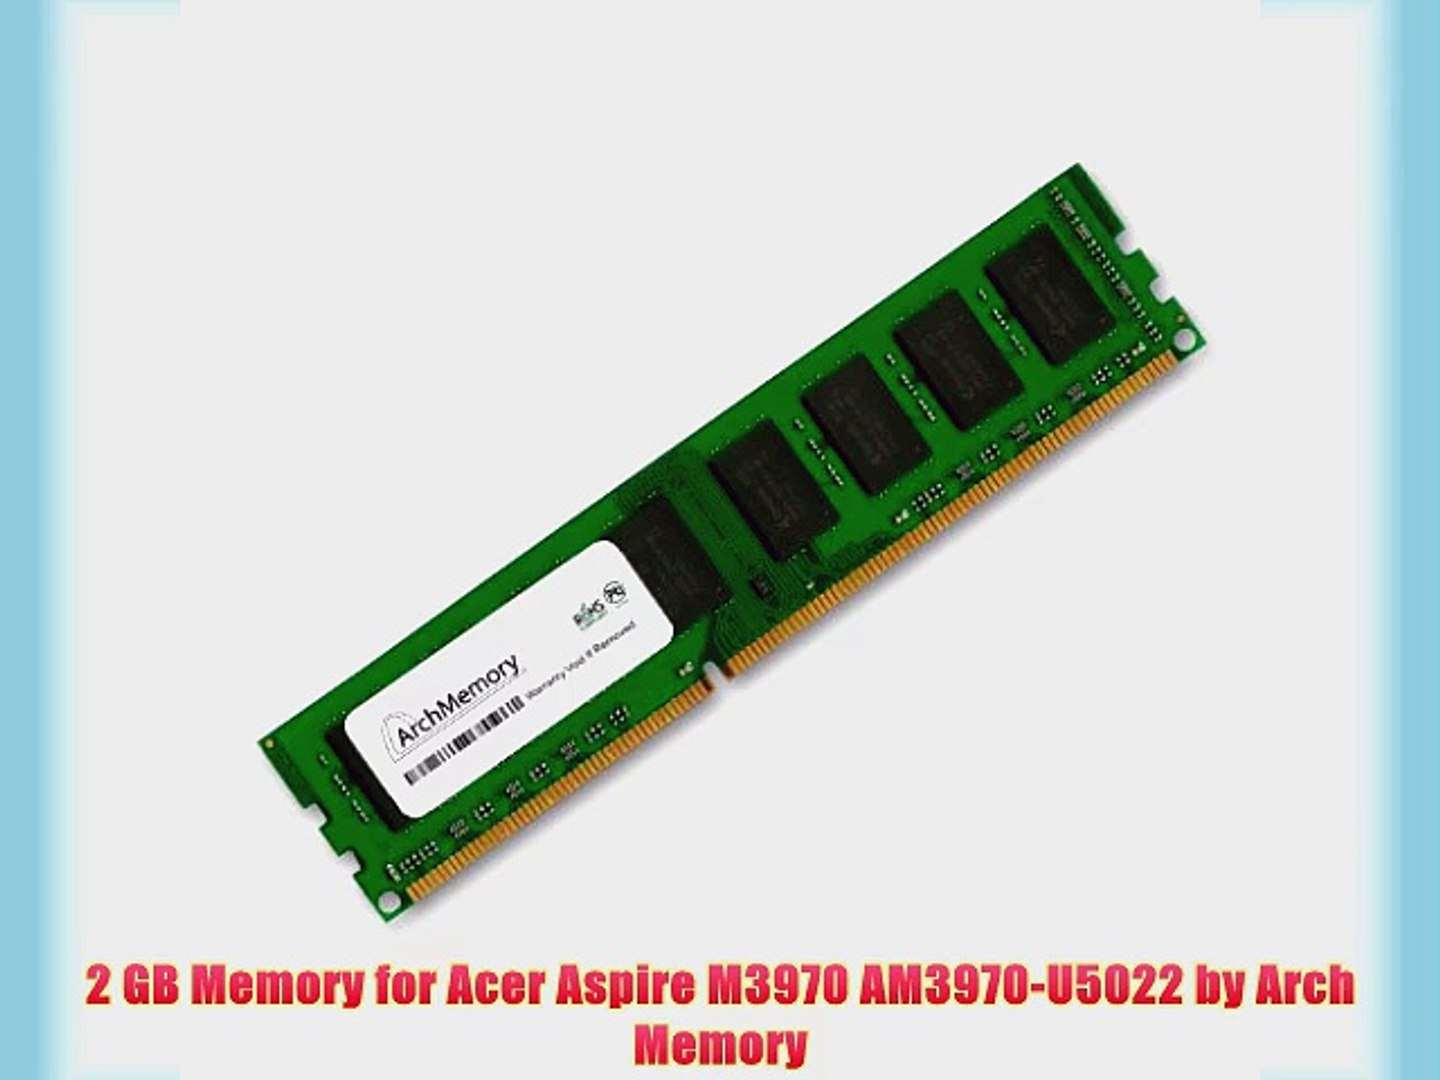 Verwonderend 2 GB Memory for Acer Aspire M3970 AM3970-U5022 by Arch Memory CY-66